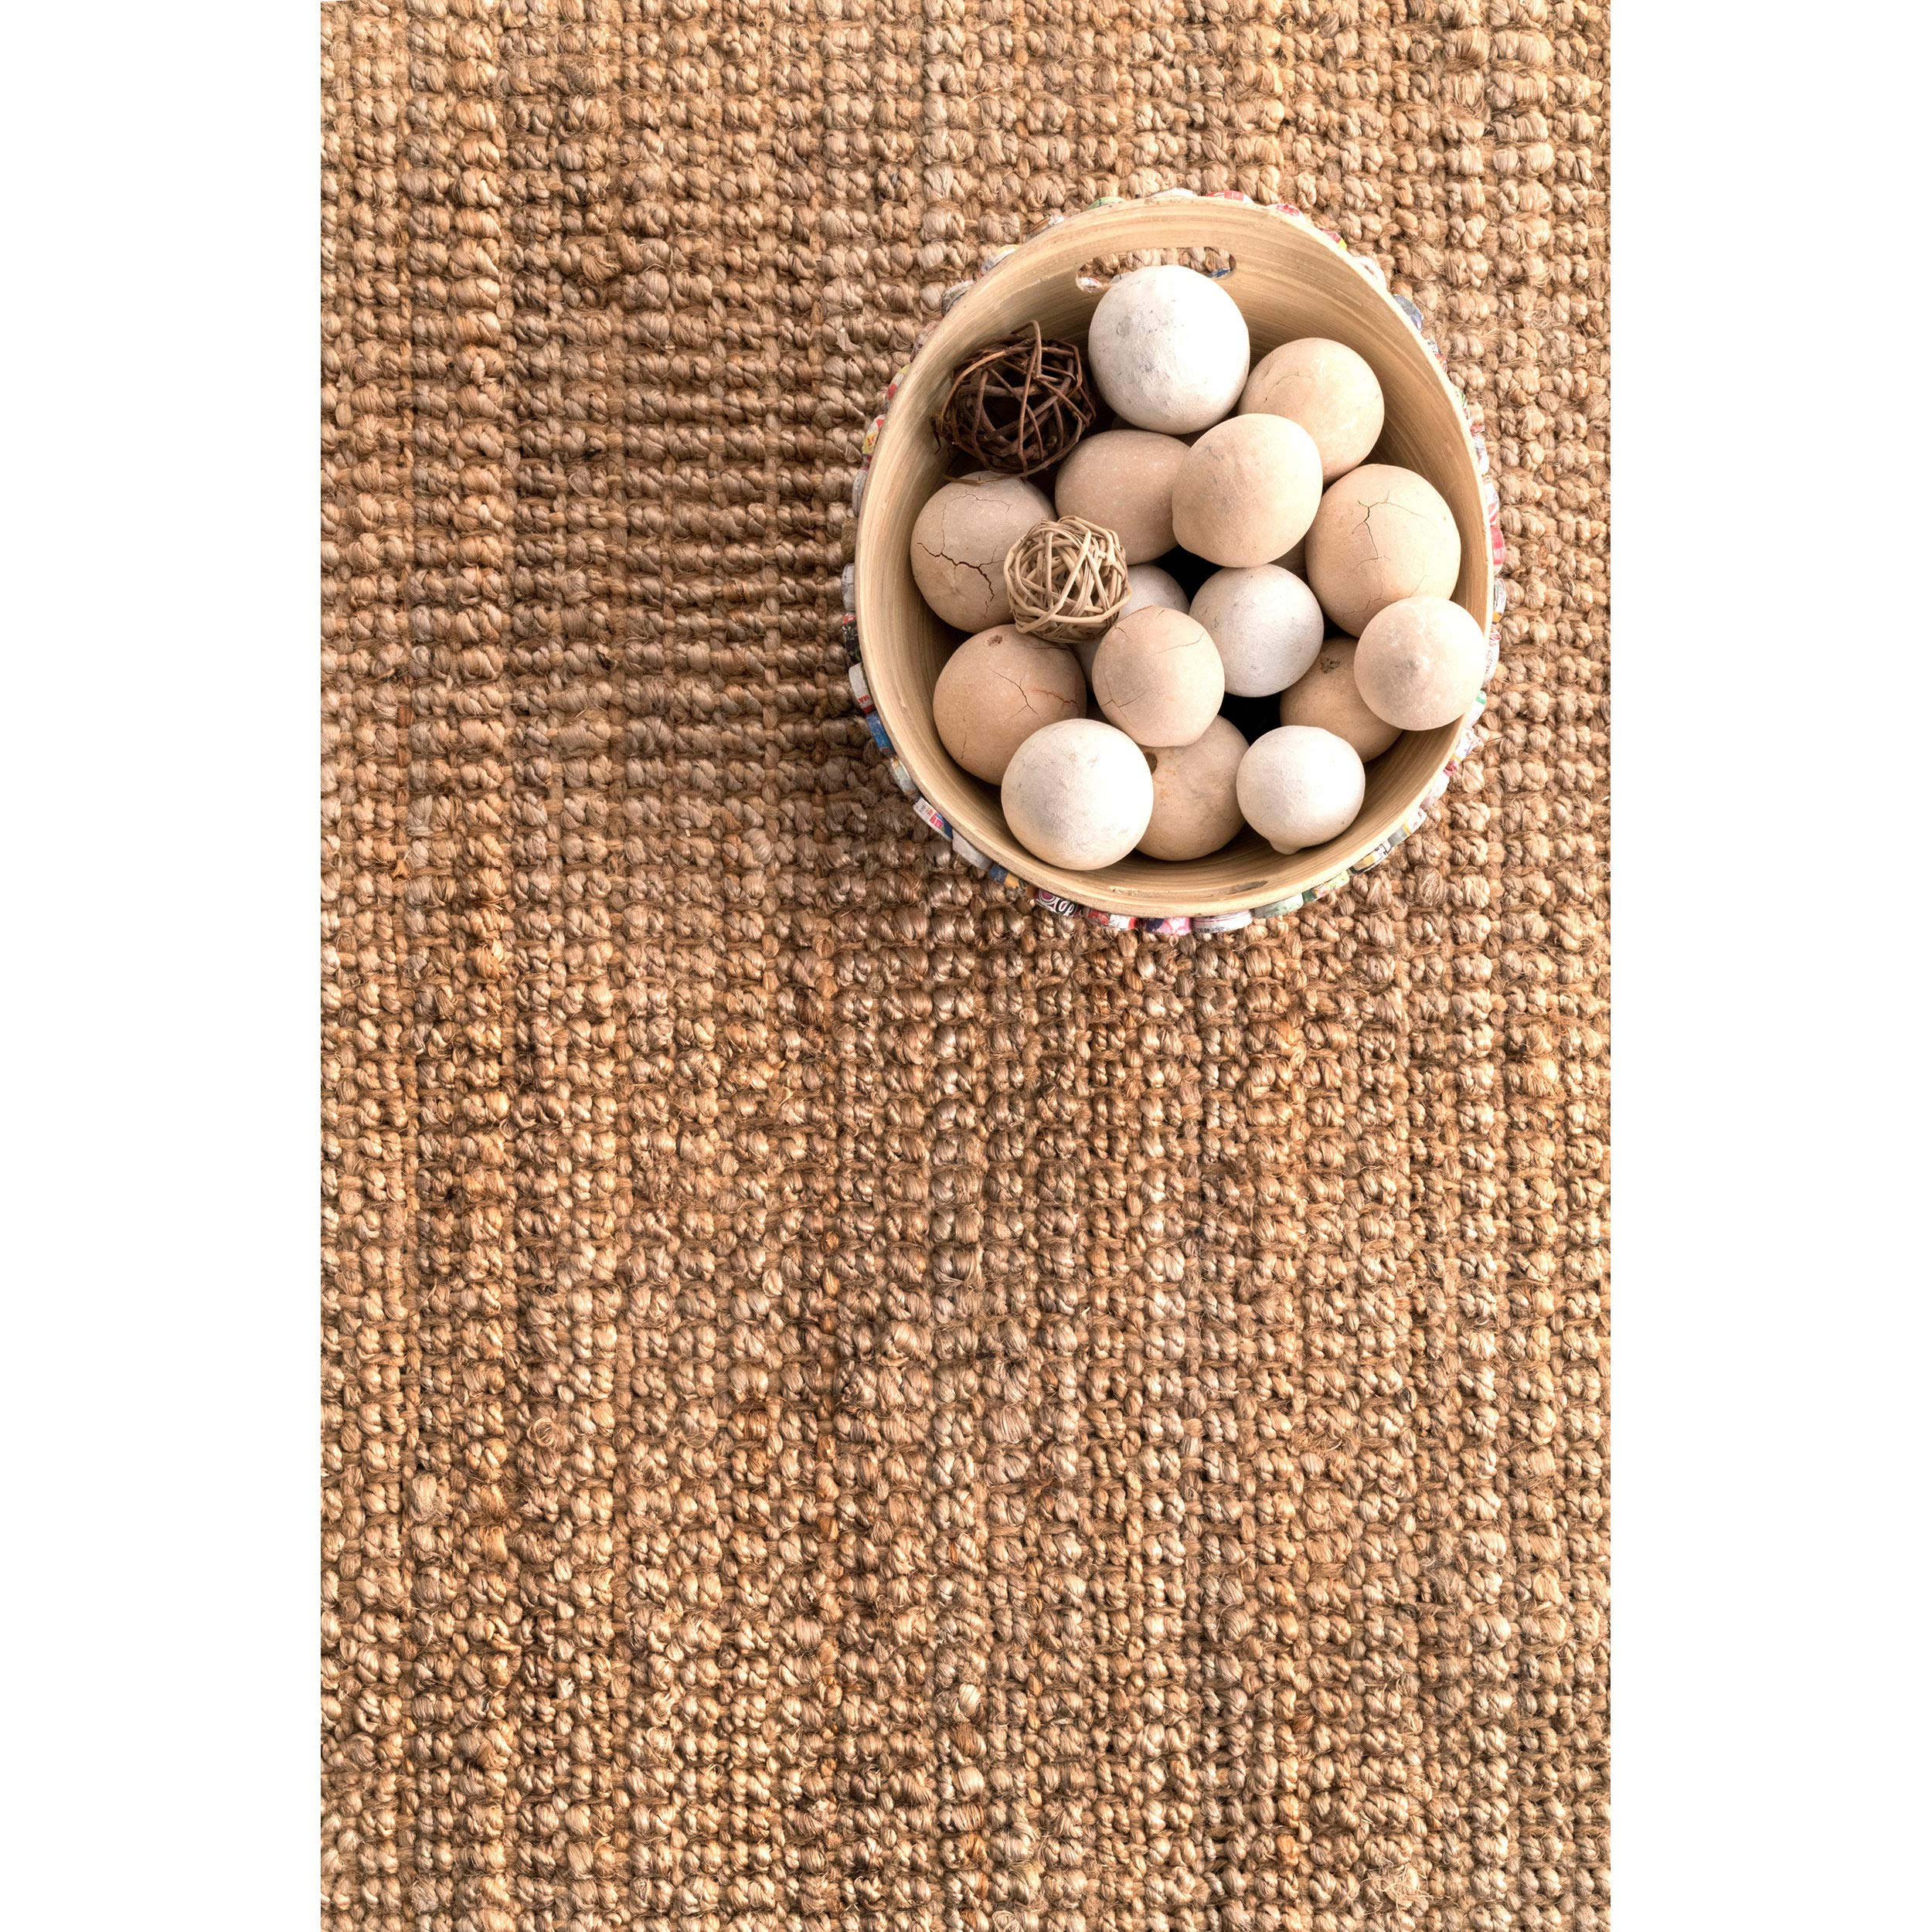 nuLOOM Handwoven Jute Ribbed Solid Area Rugs, 4' x 6', Natural by nuLOOM (Image #7)